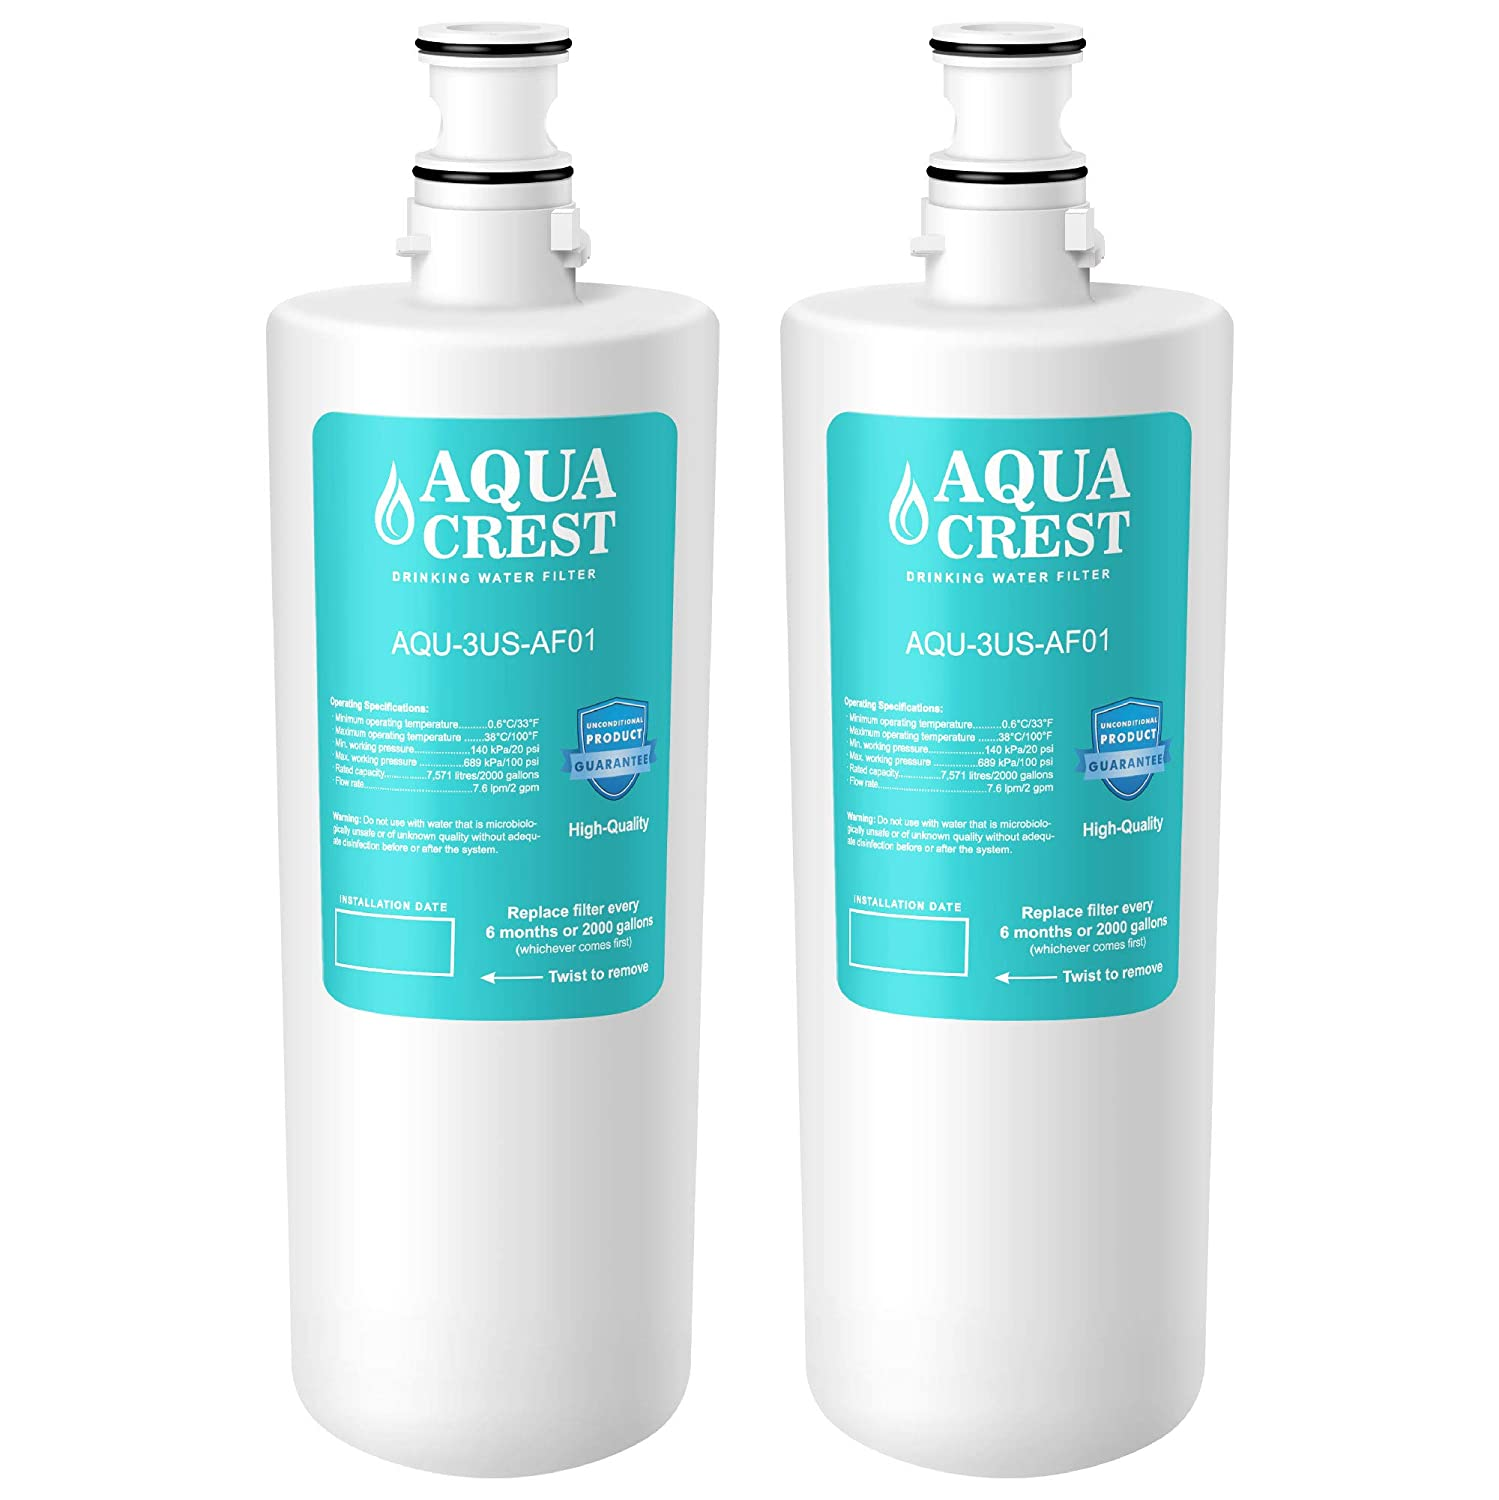 AQUACREST 3US-AF01 Under Sink Water Filter, Compatible with Standard Filtrete 3US-AF01, 3US-AS01 Water Filter (Pack of 2)